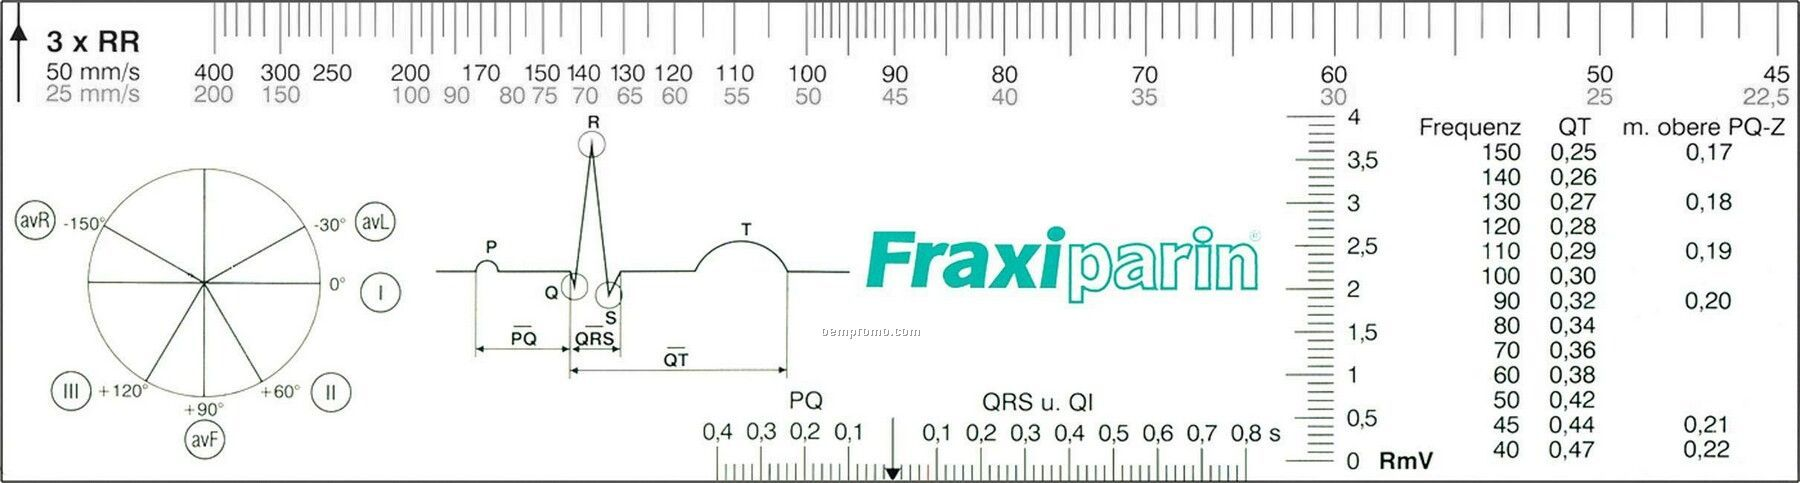 Ecg Ruler 8`` - Transparent